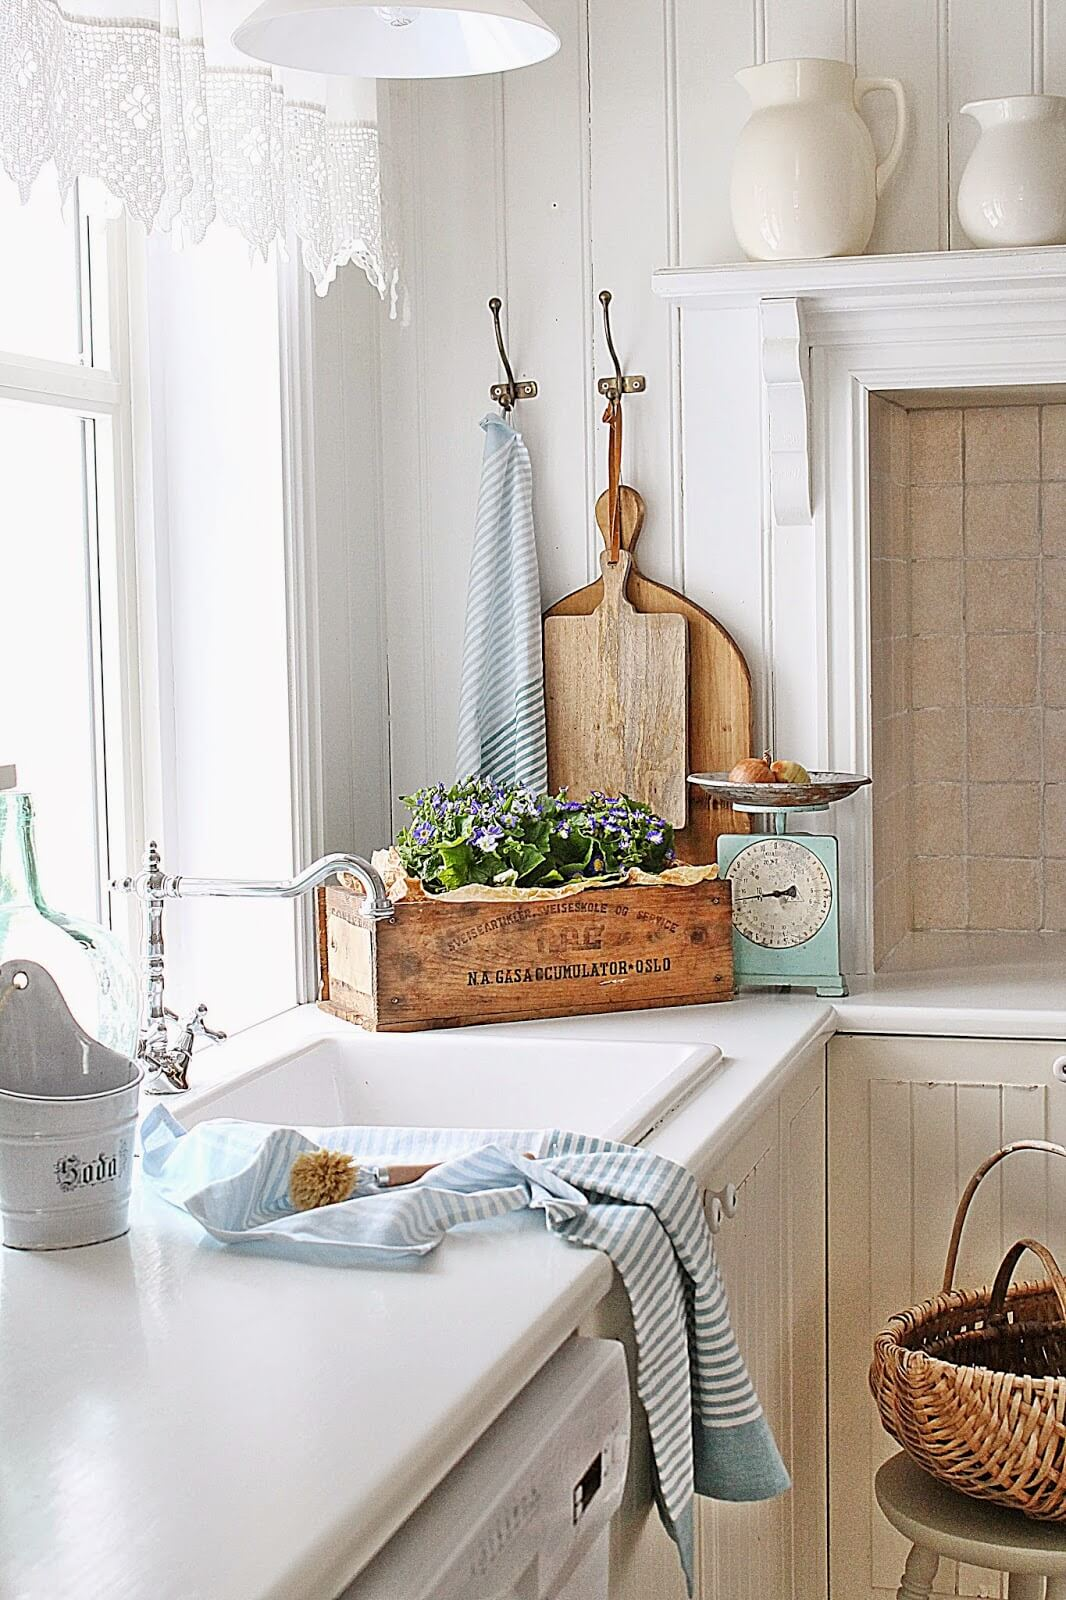 Best Accessories for the Cottage Kitchen